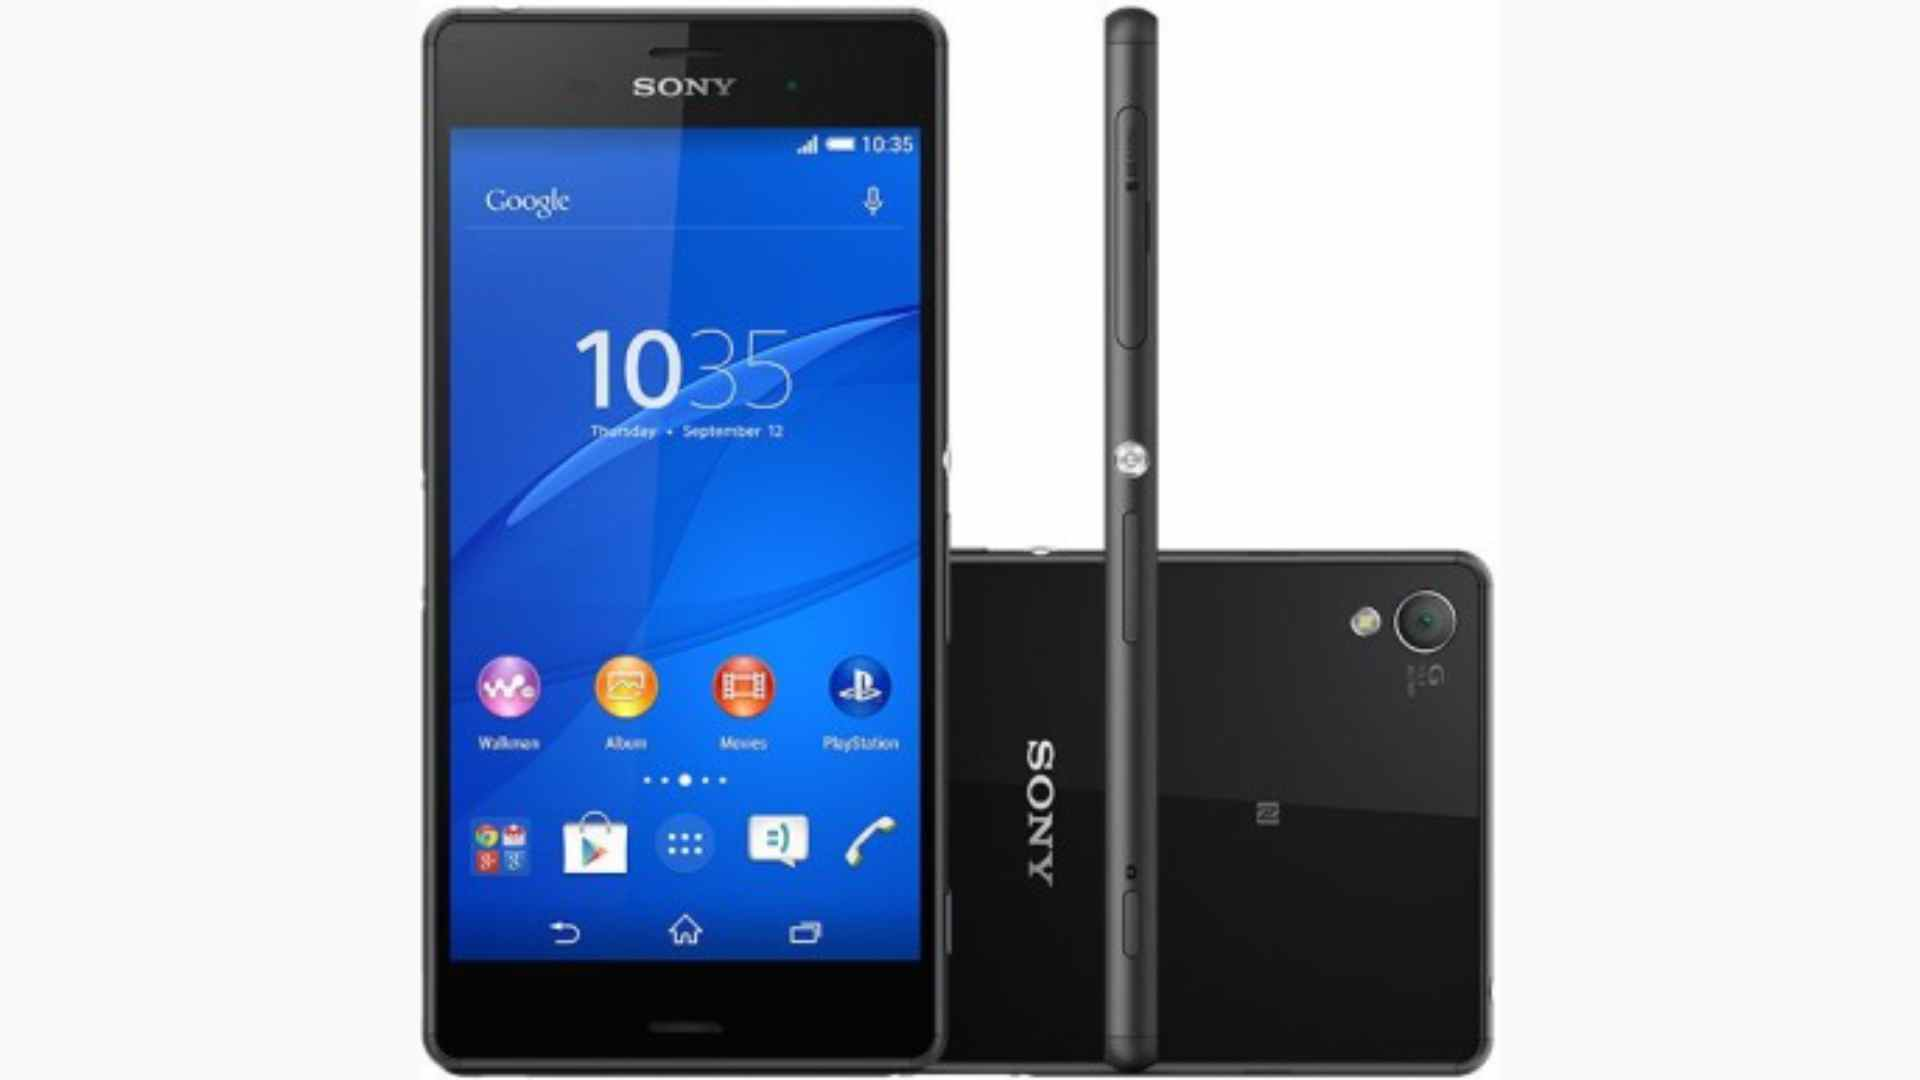 Sony Xperia Z3 + (Z4) Review